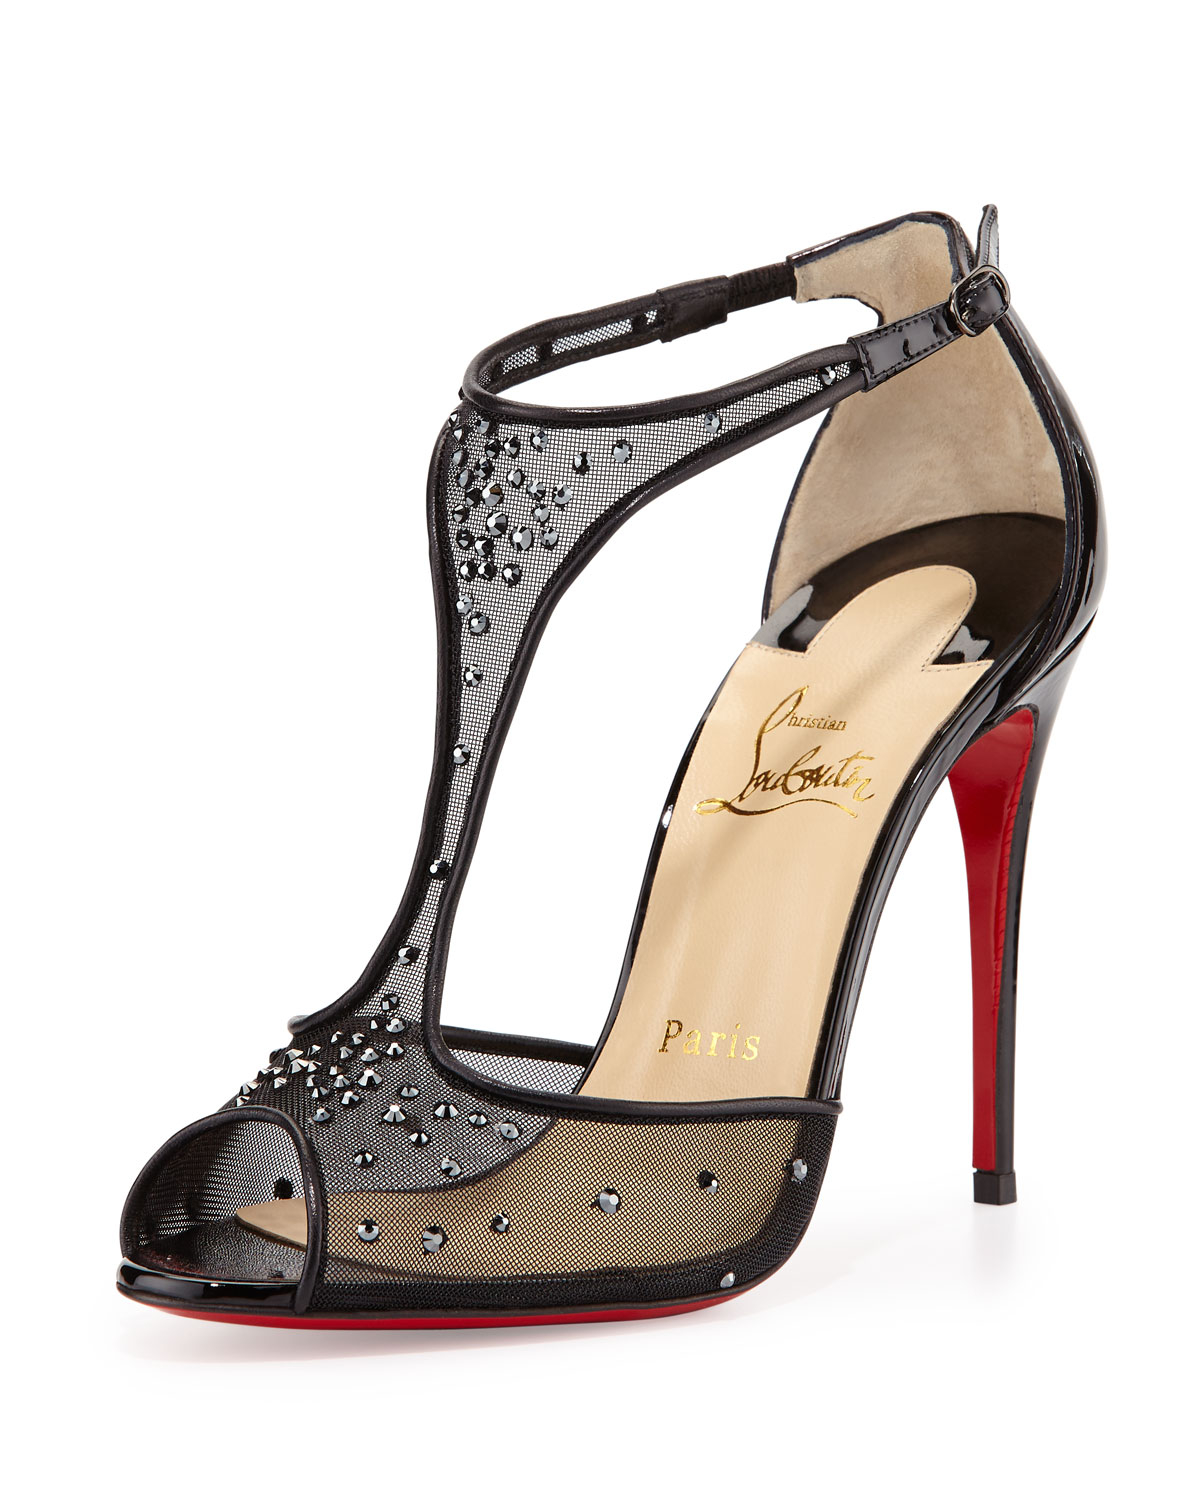 d0523f73ff58 Lyst - Christian Louboutin Patinana Strass Red Sole Sandal in Black